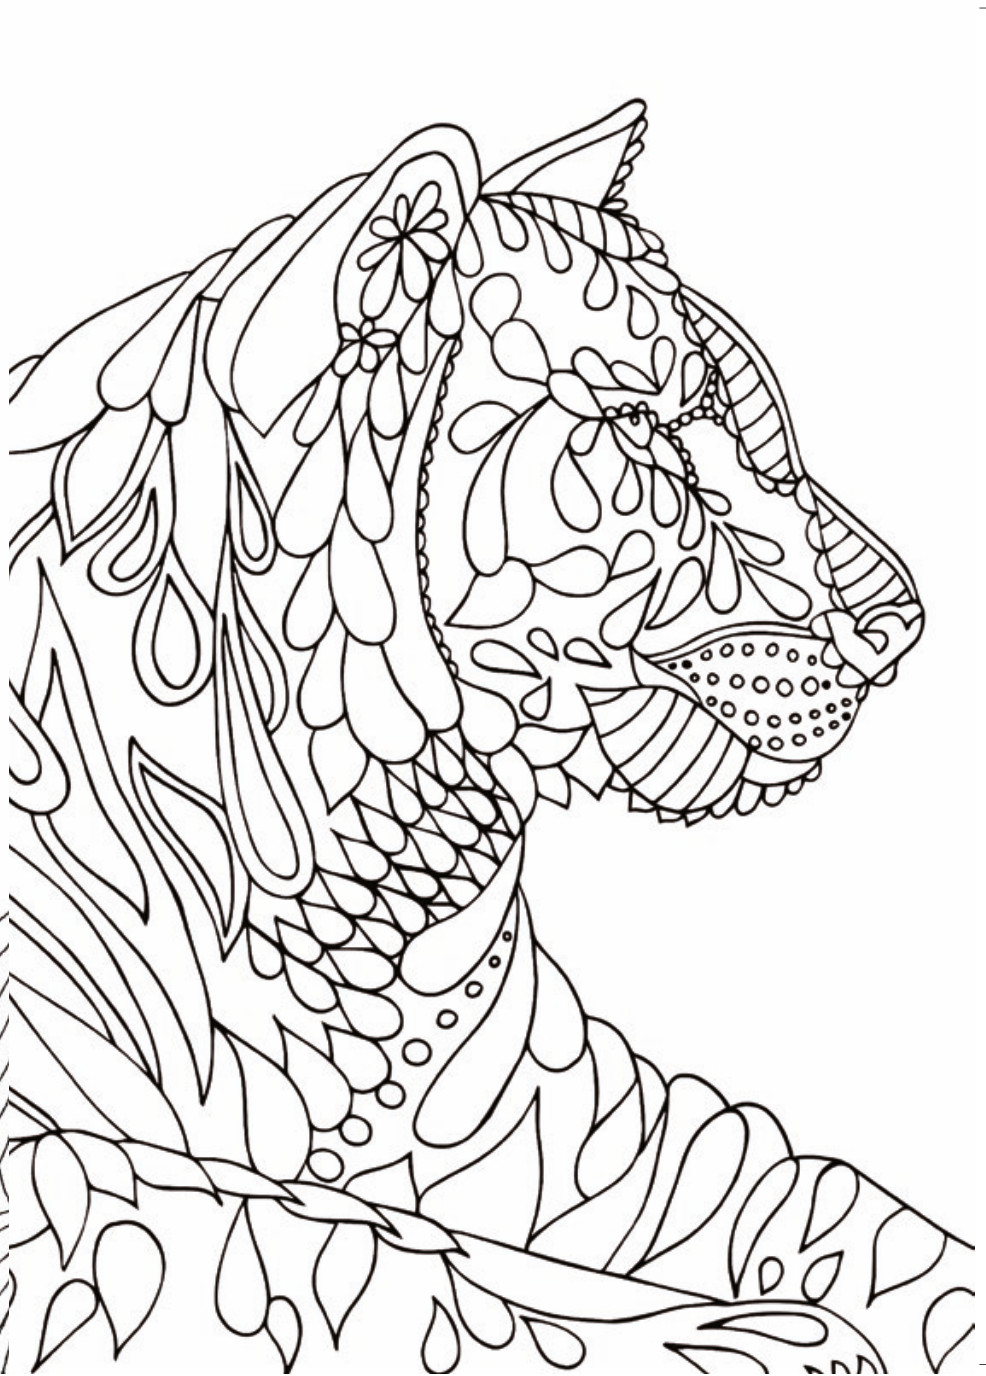 Coloring Pages For Boys Calm  Mindfulness Drawing at GetDrawings